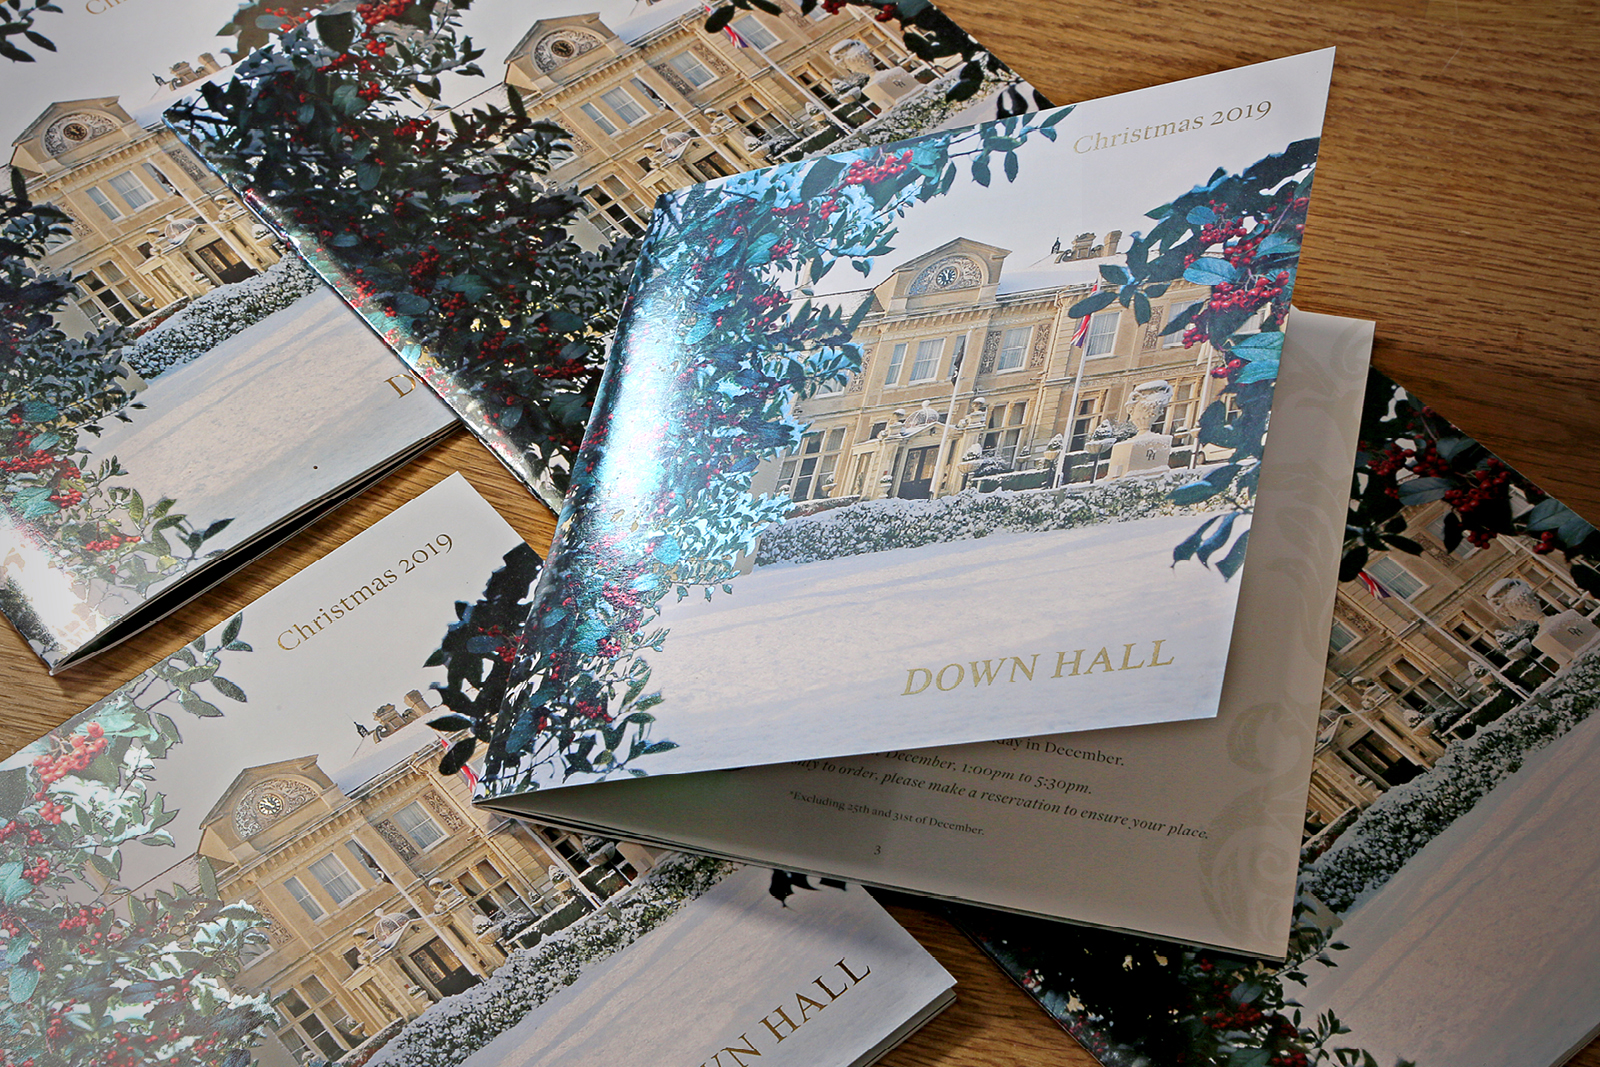 Down Hall 2019 Christmas Brochure